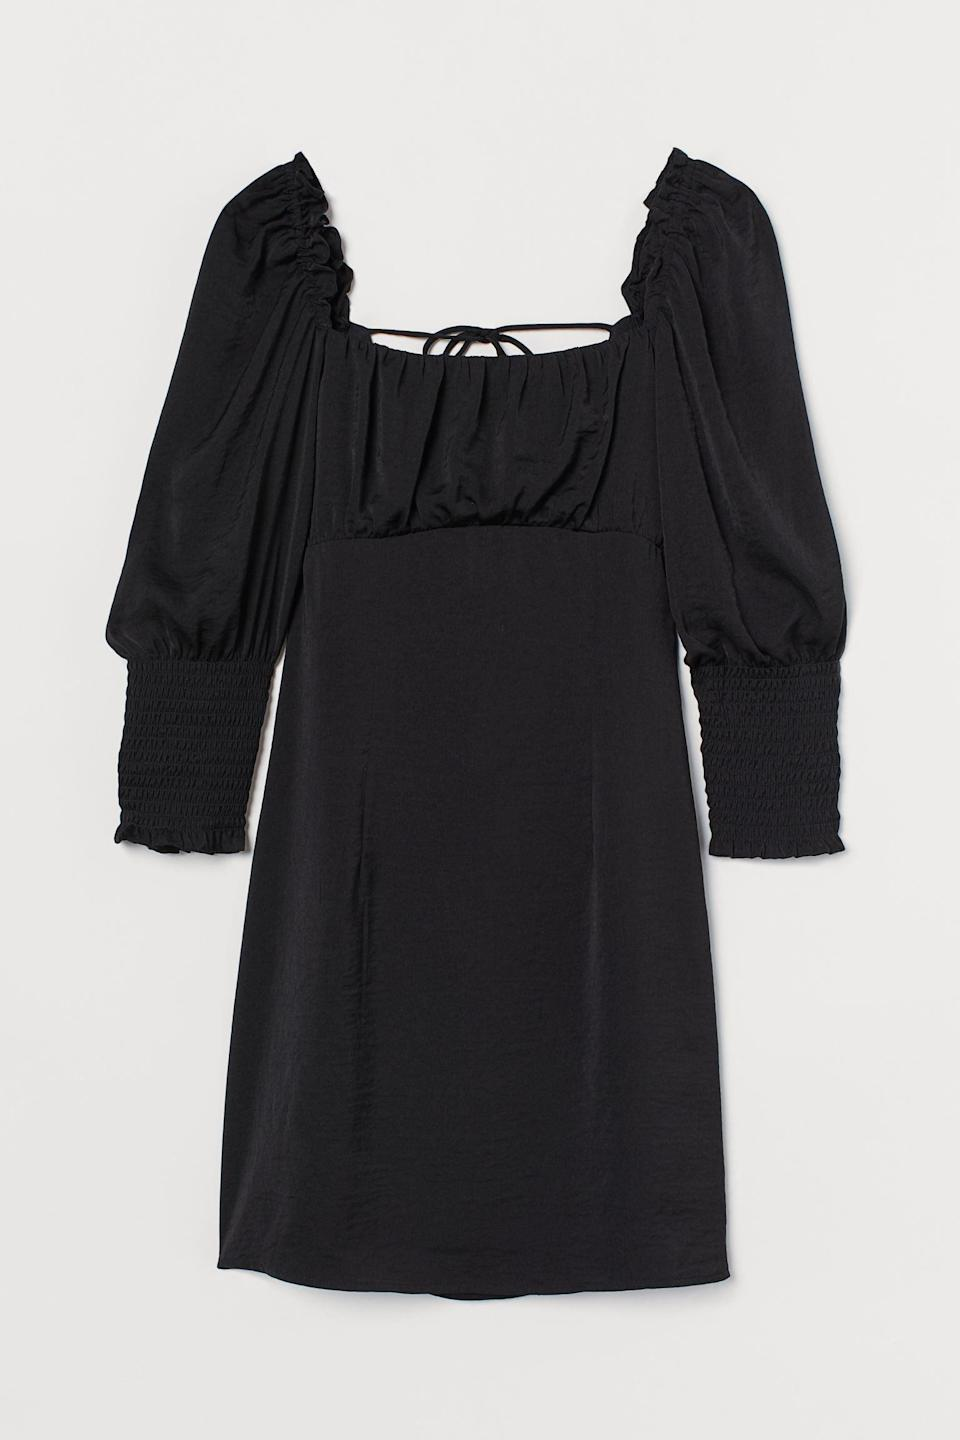 <p>This <span>H&amp;M Back-Laced Dress</span> ($14, originally $30) is the perfect LBD.</p>